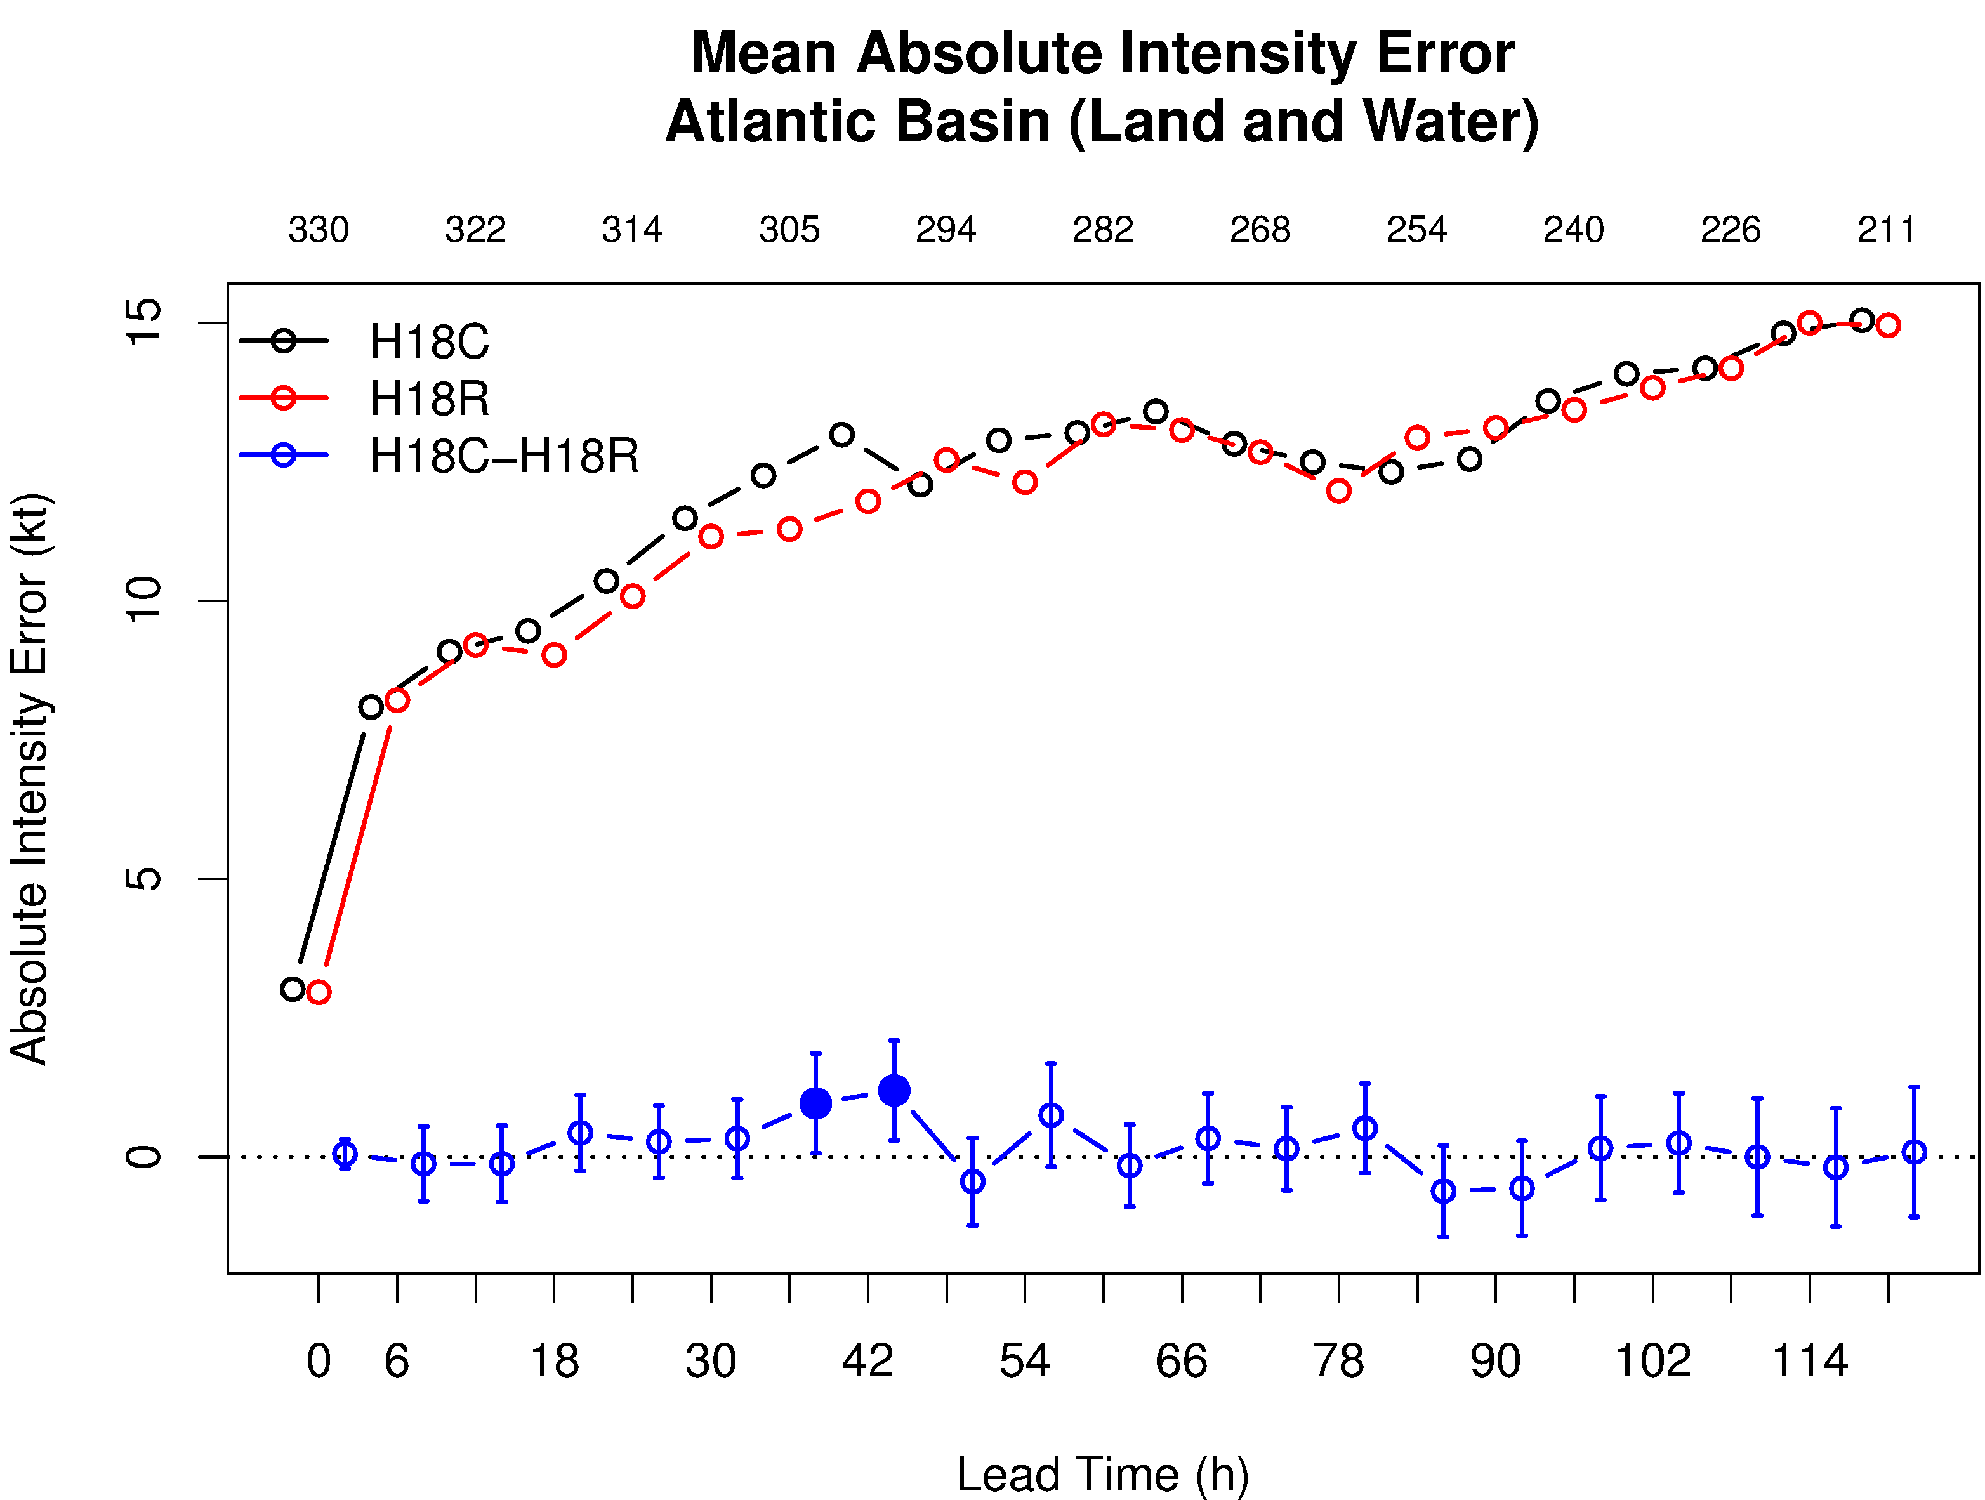 Mean absolute intensity errors